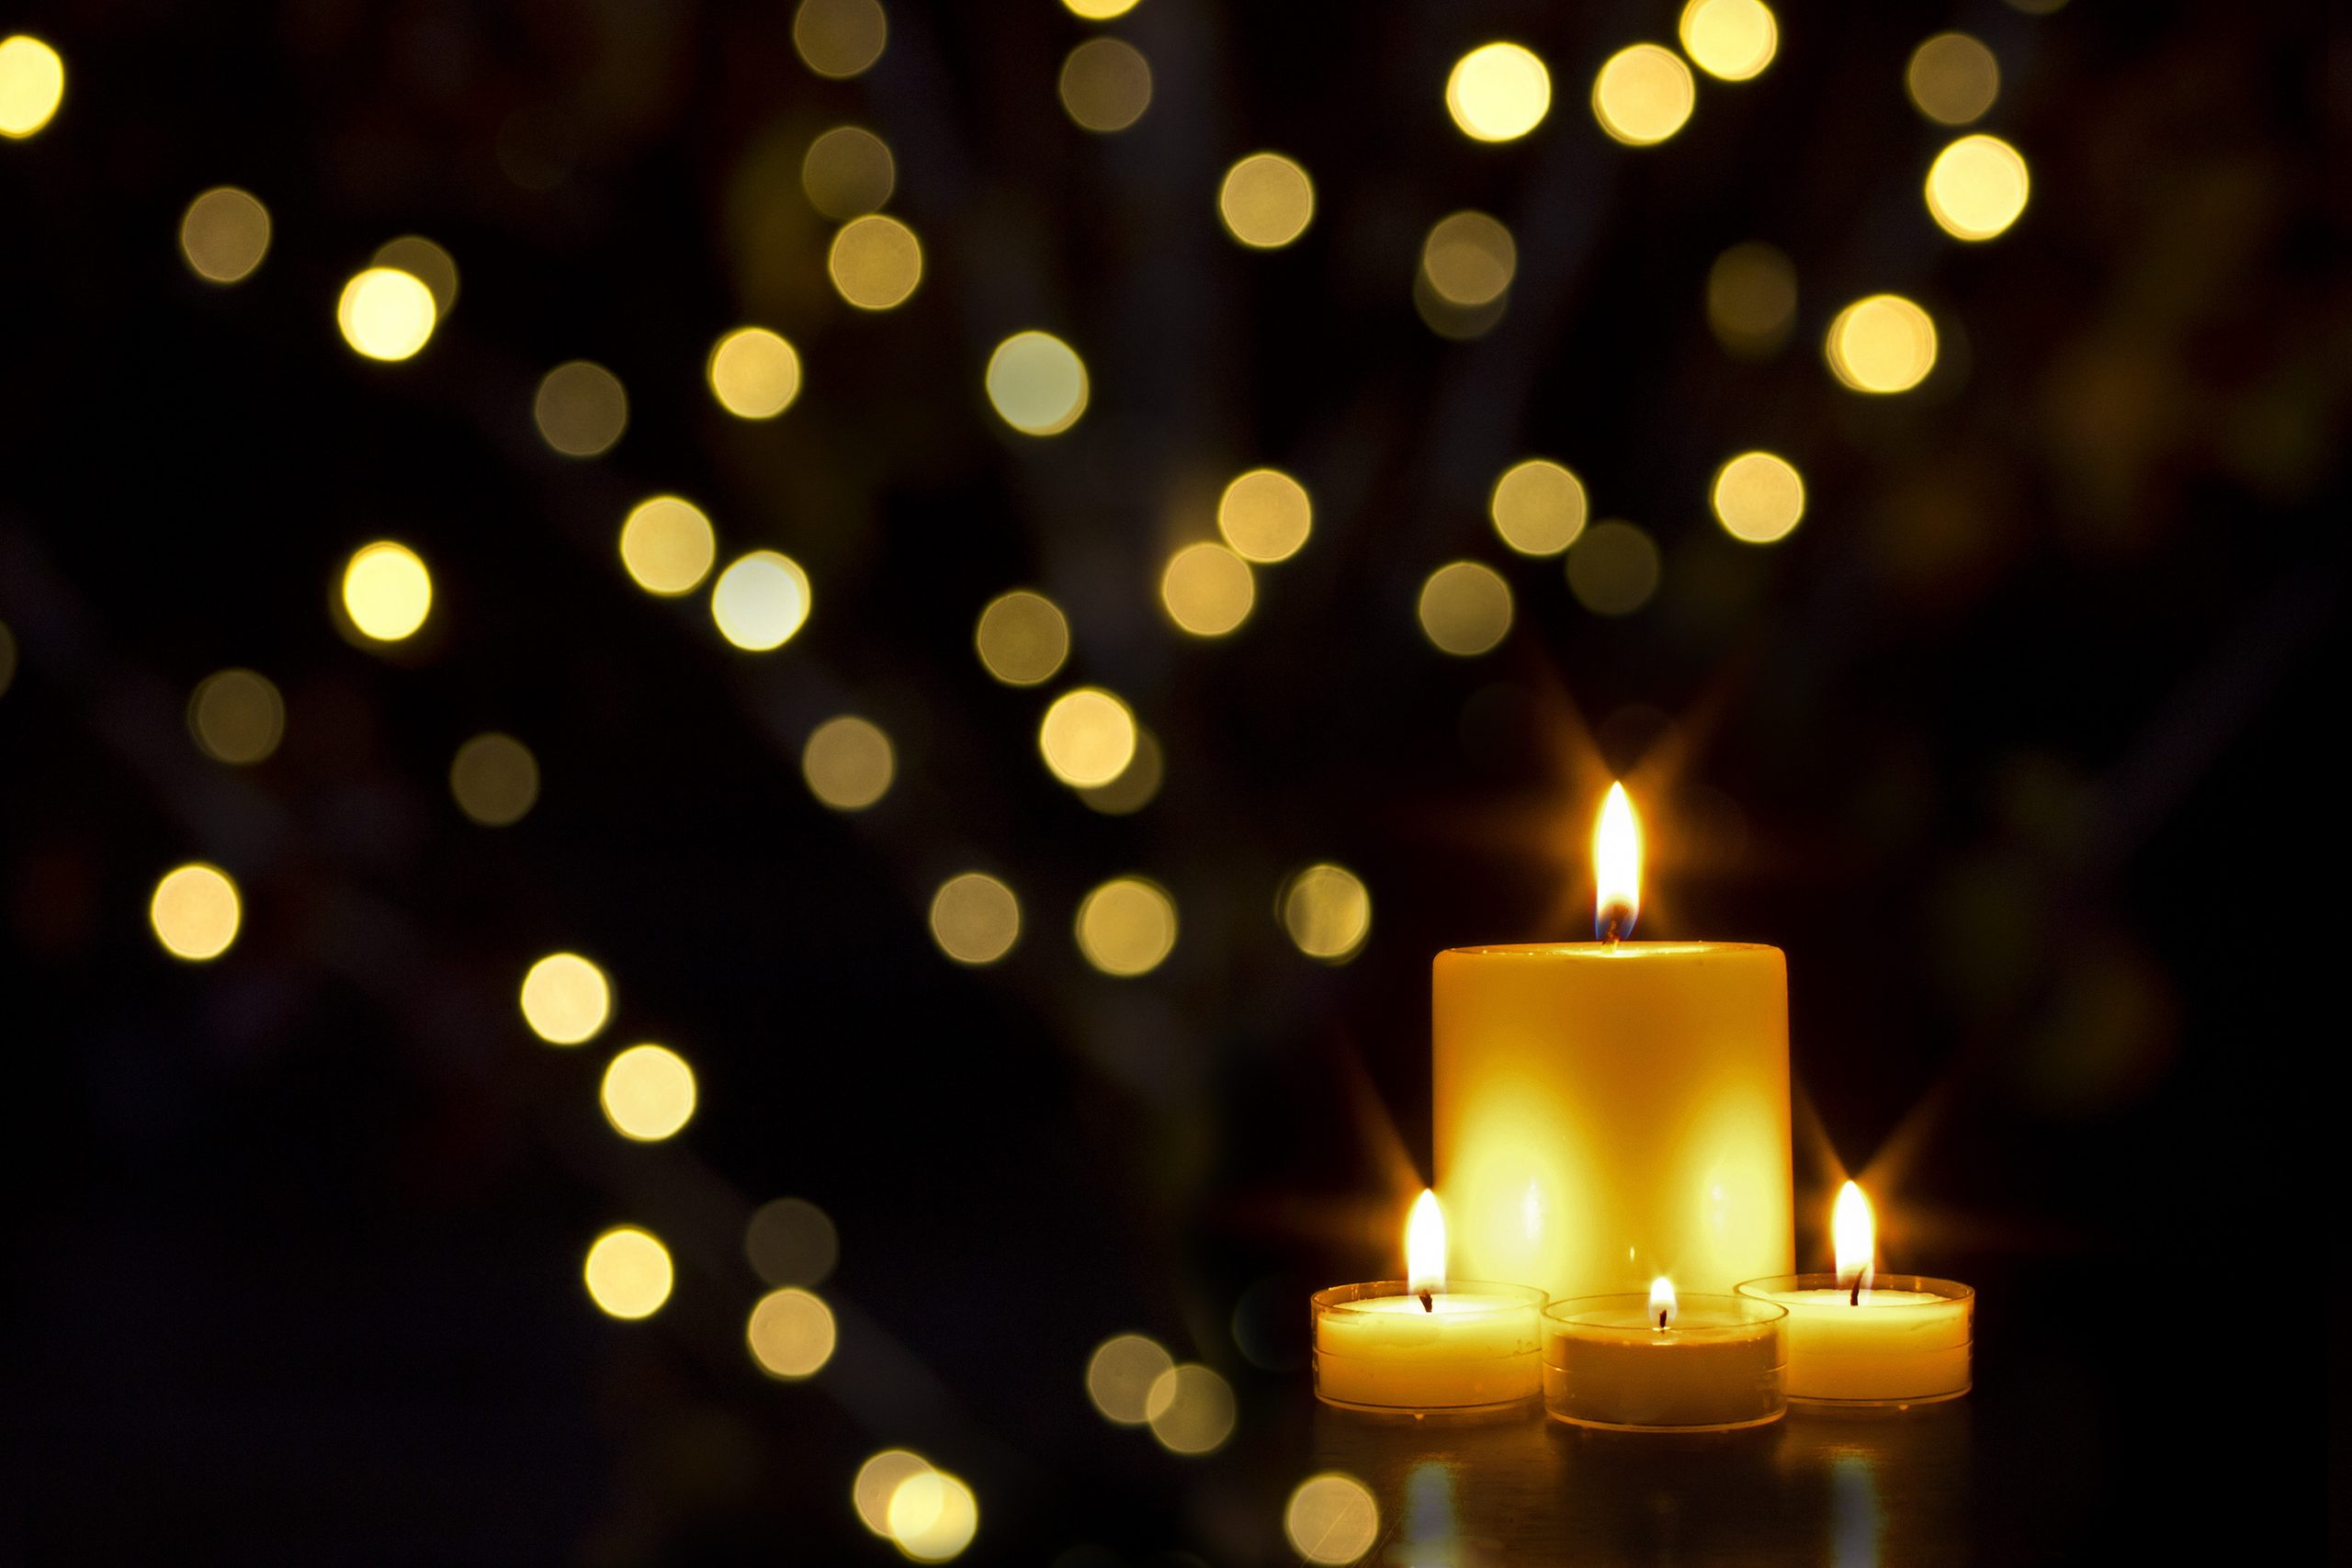 Stock image of regligious candles with gold light reflections